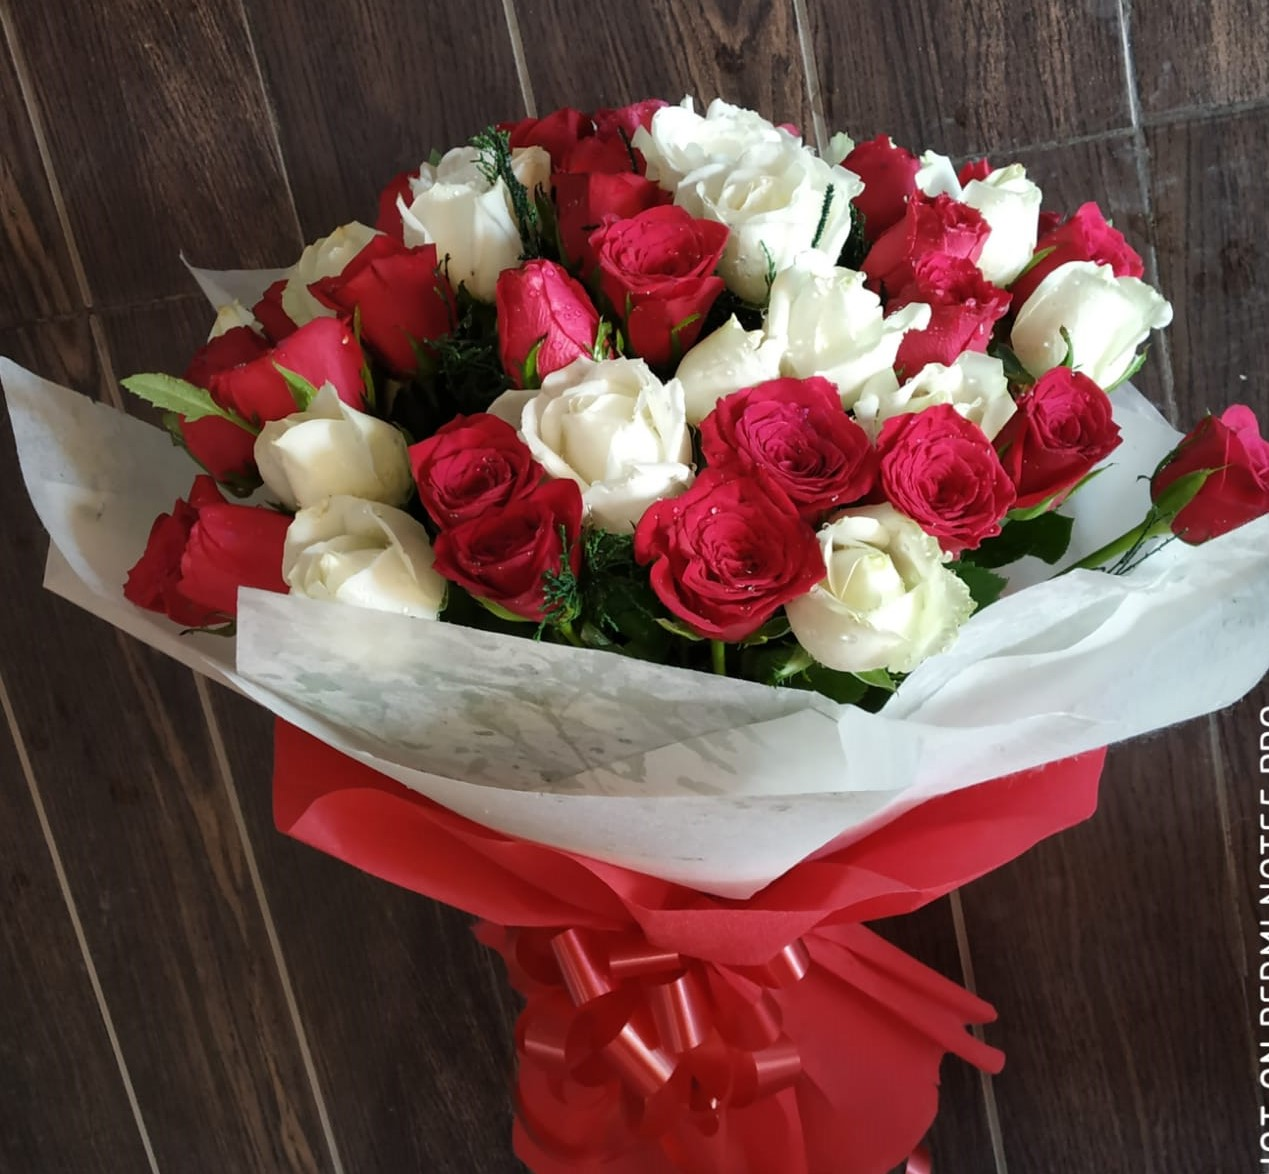 Flowers Delivery in Sitla  Nandit GurgaonRed & White Roses in Duble Layer Packing